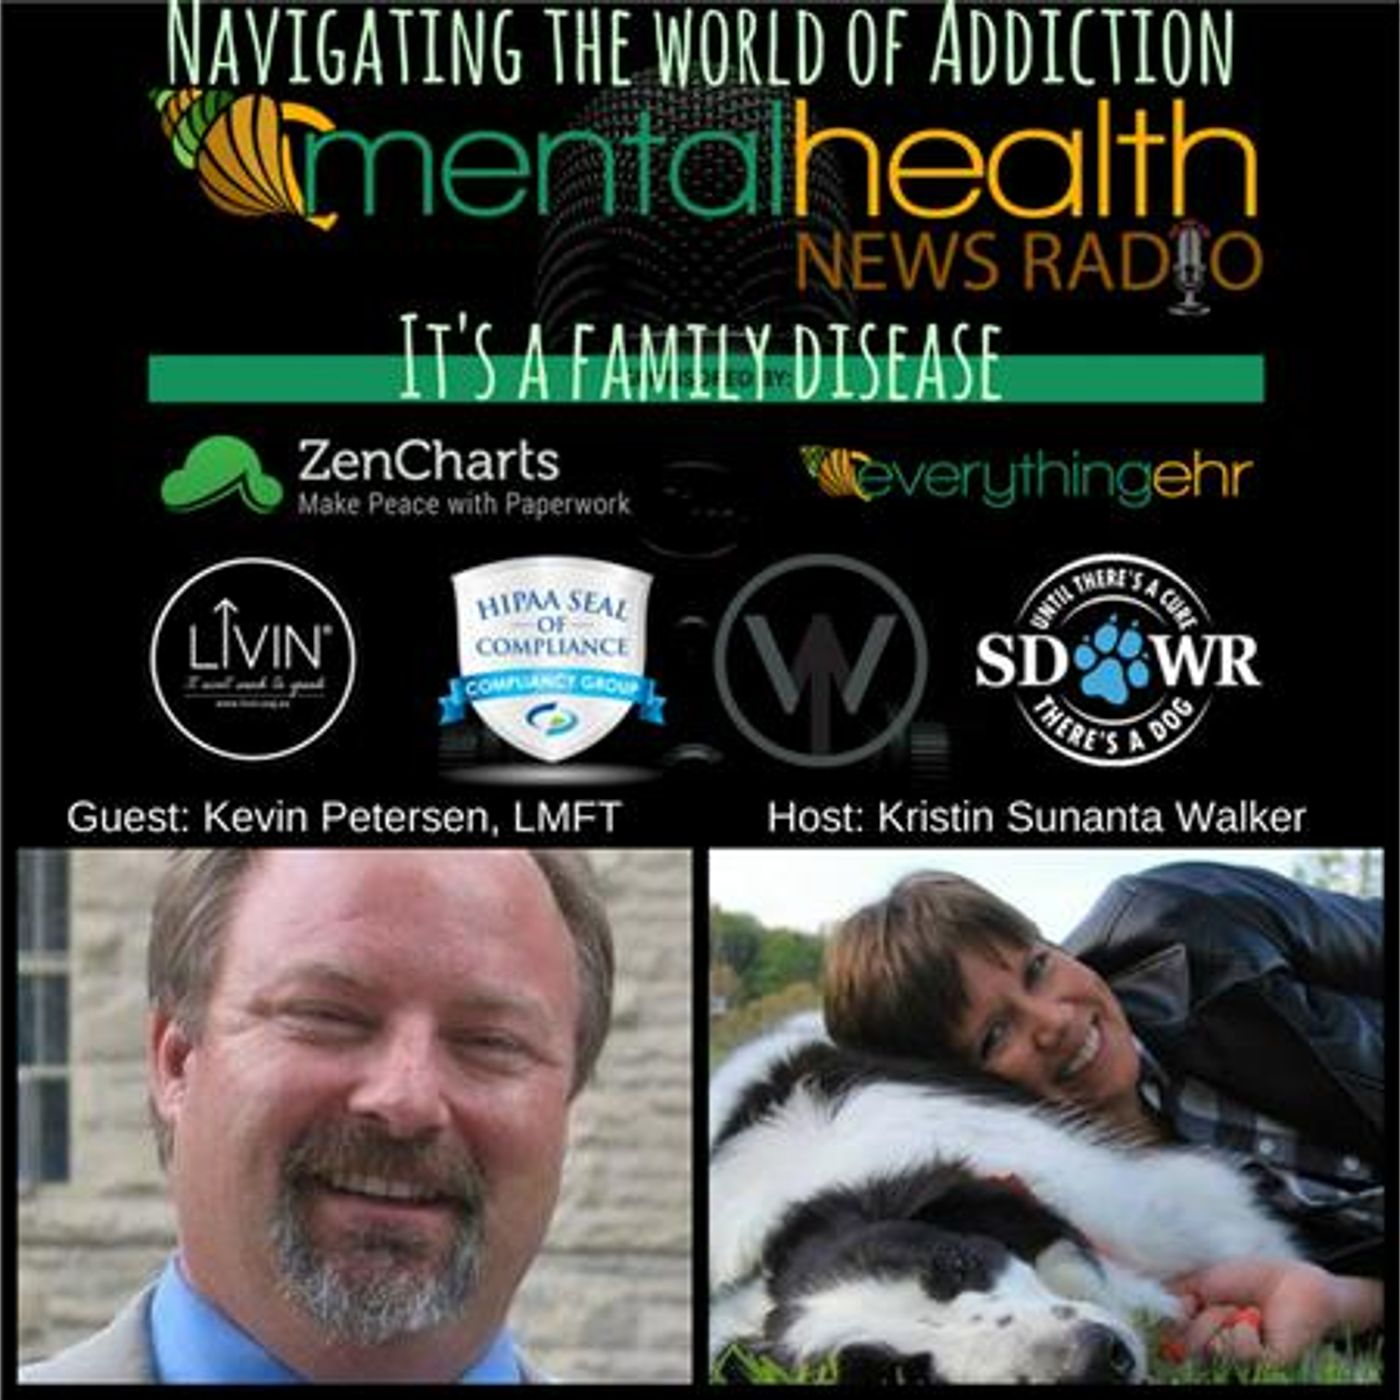 Mental Health News Radio - Navigating The World Of Addiction: The Family Disease with Kevin Petersen, LMFT